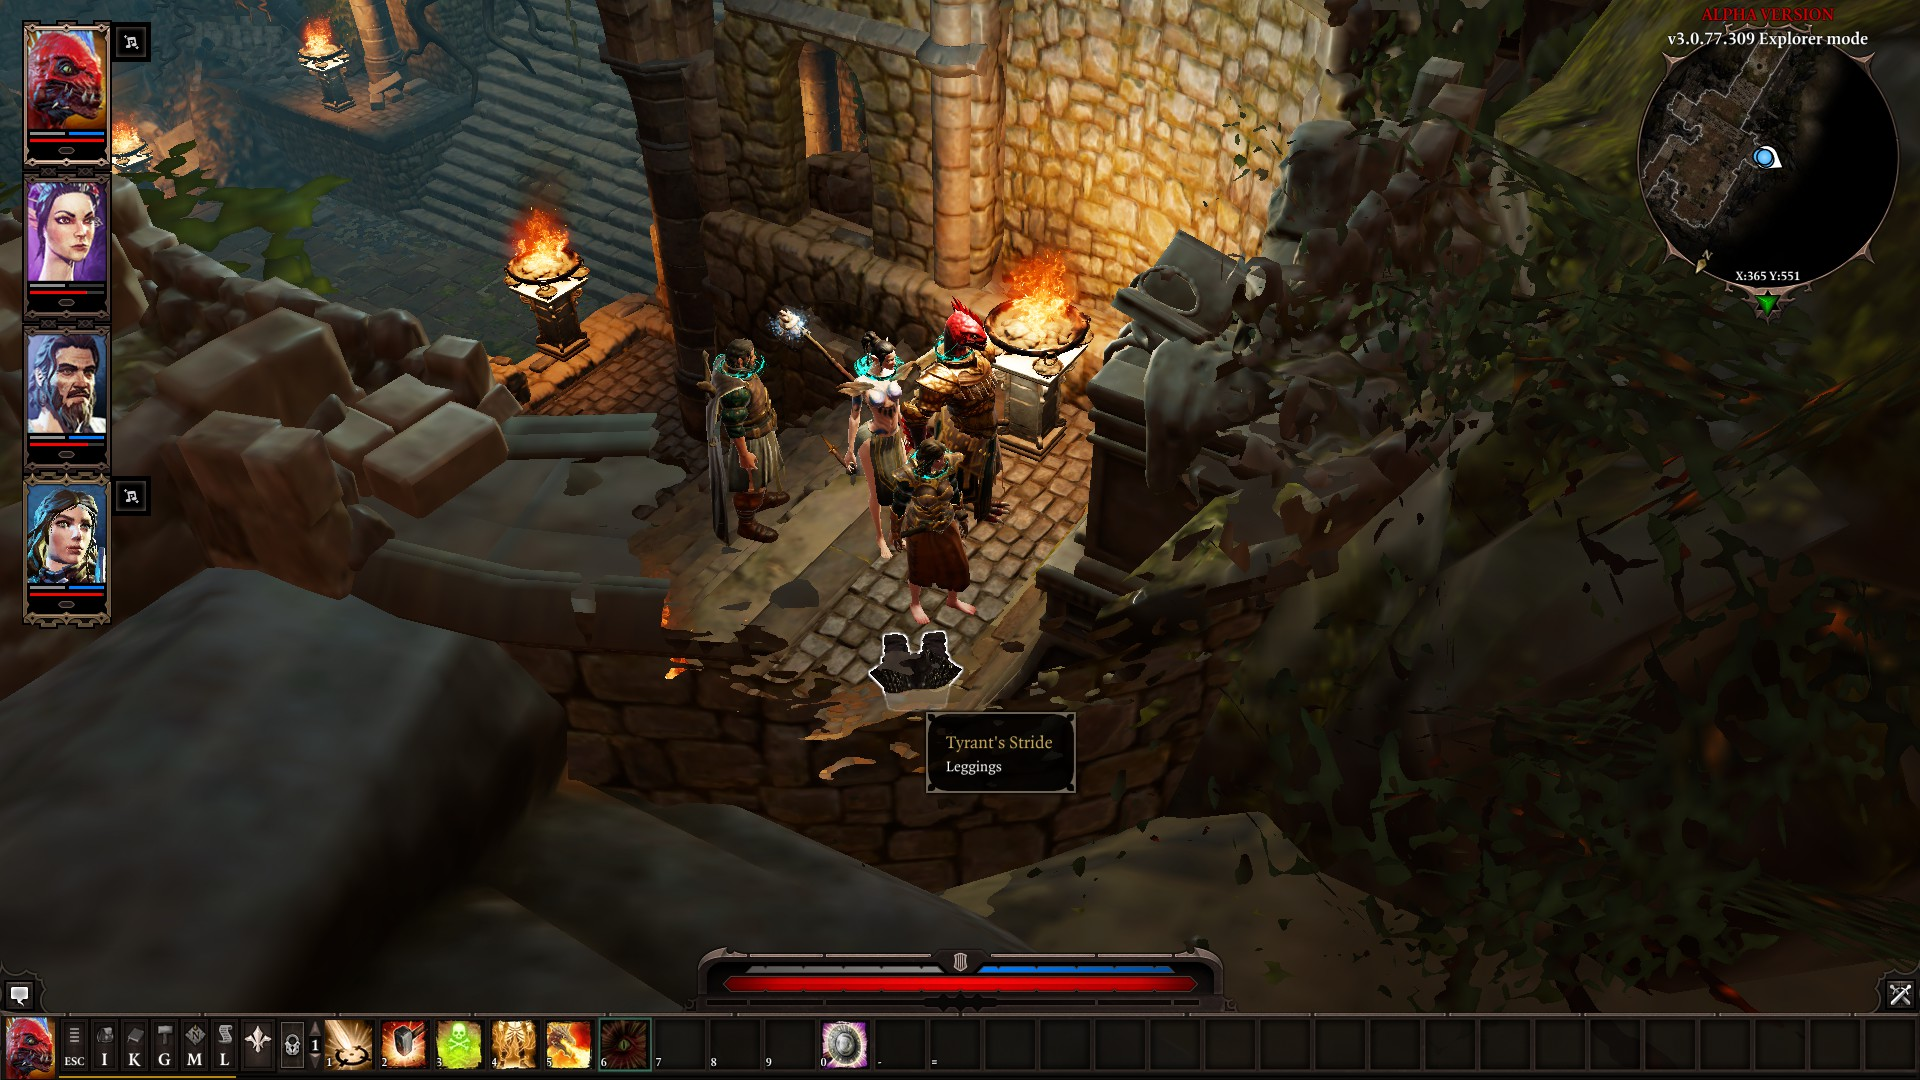 Steam Community Guide Guide To The Artefacts Of The Tyrant Divinity original sin 2 (pc hd) gameplay with commentary. guide to the artefacts of the tyrant